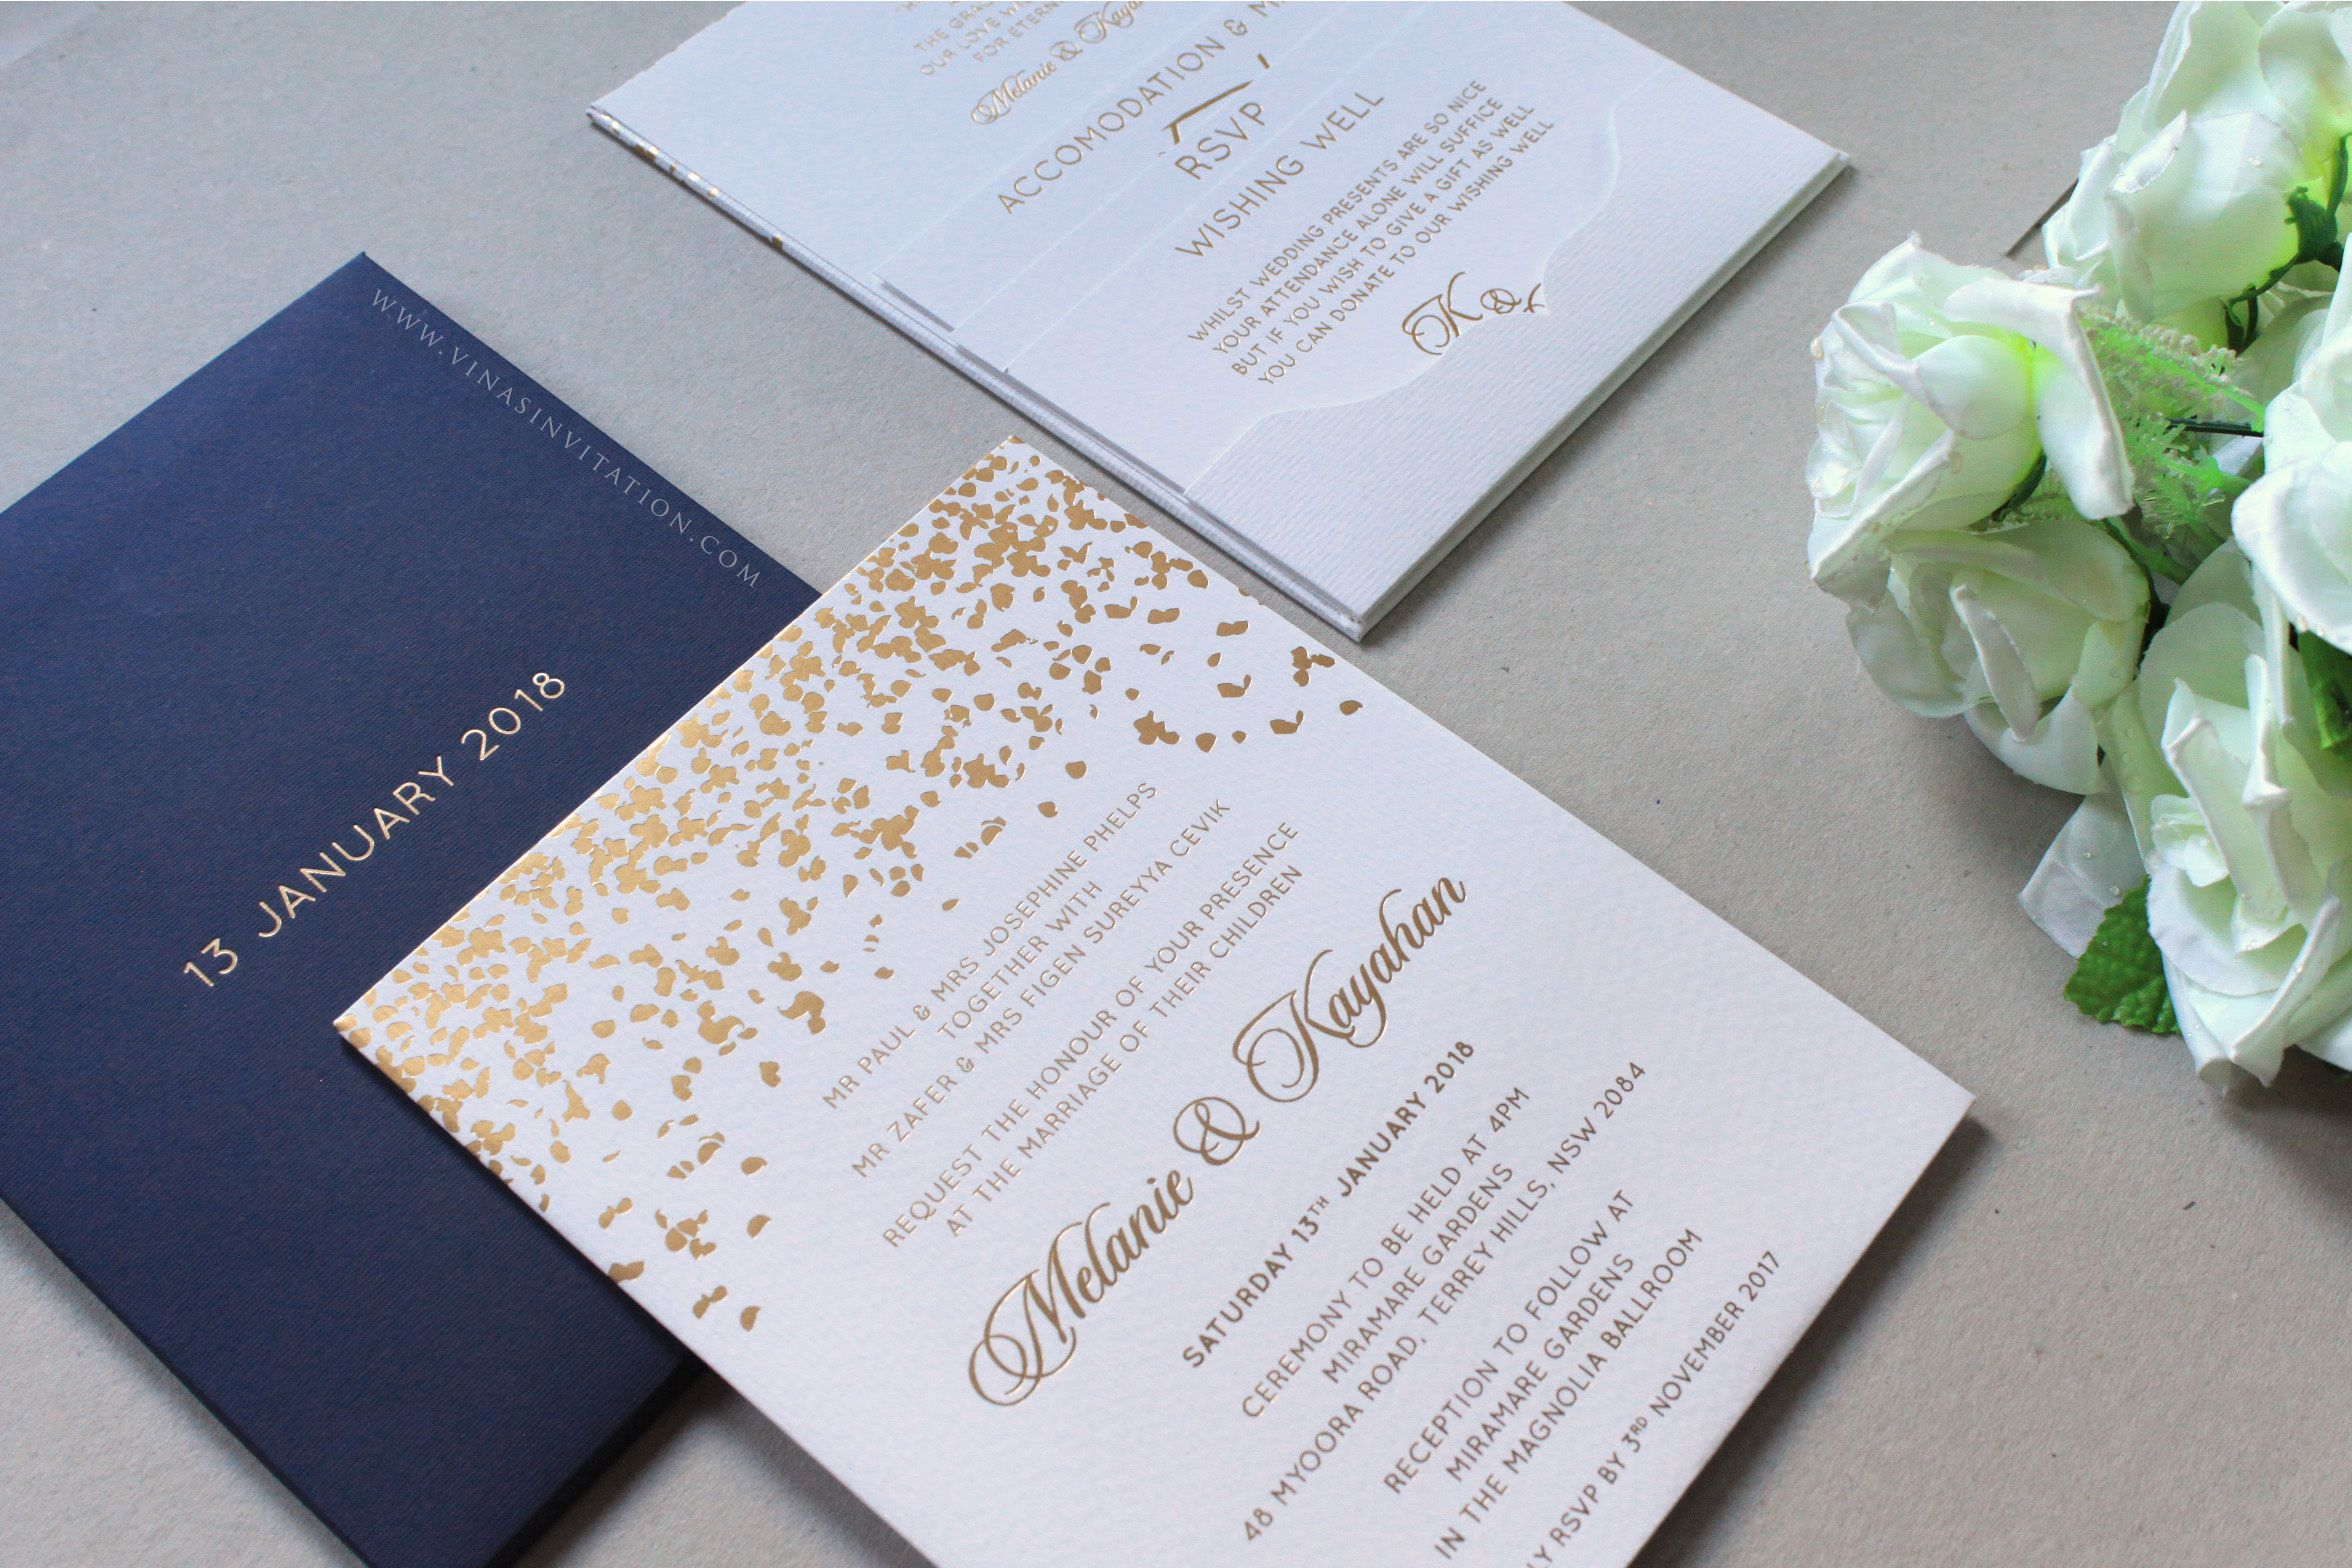 Vinas invitation wedding invitation bridestory weddinginvitation